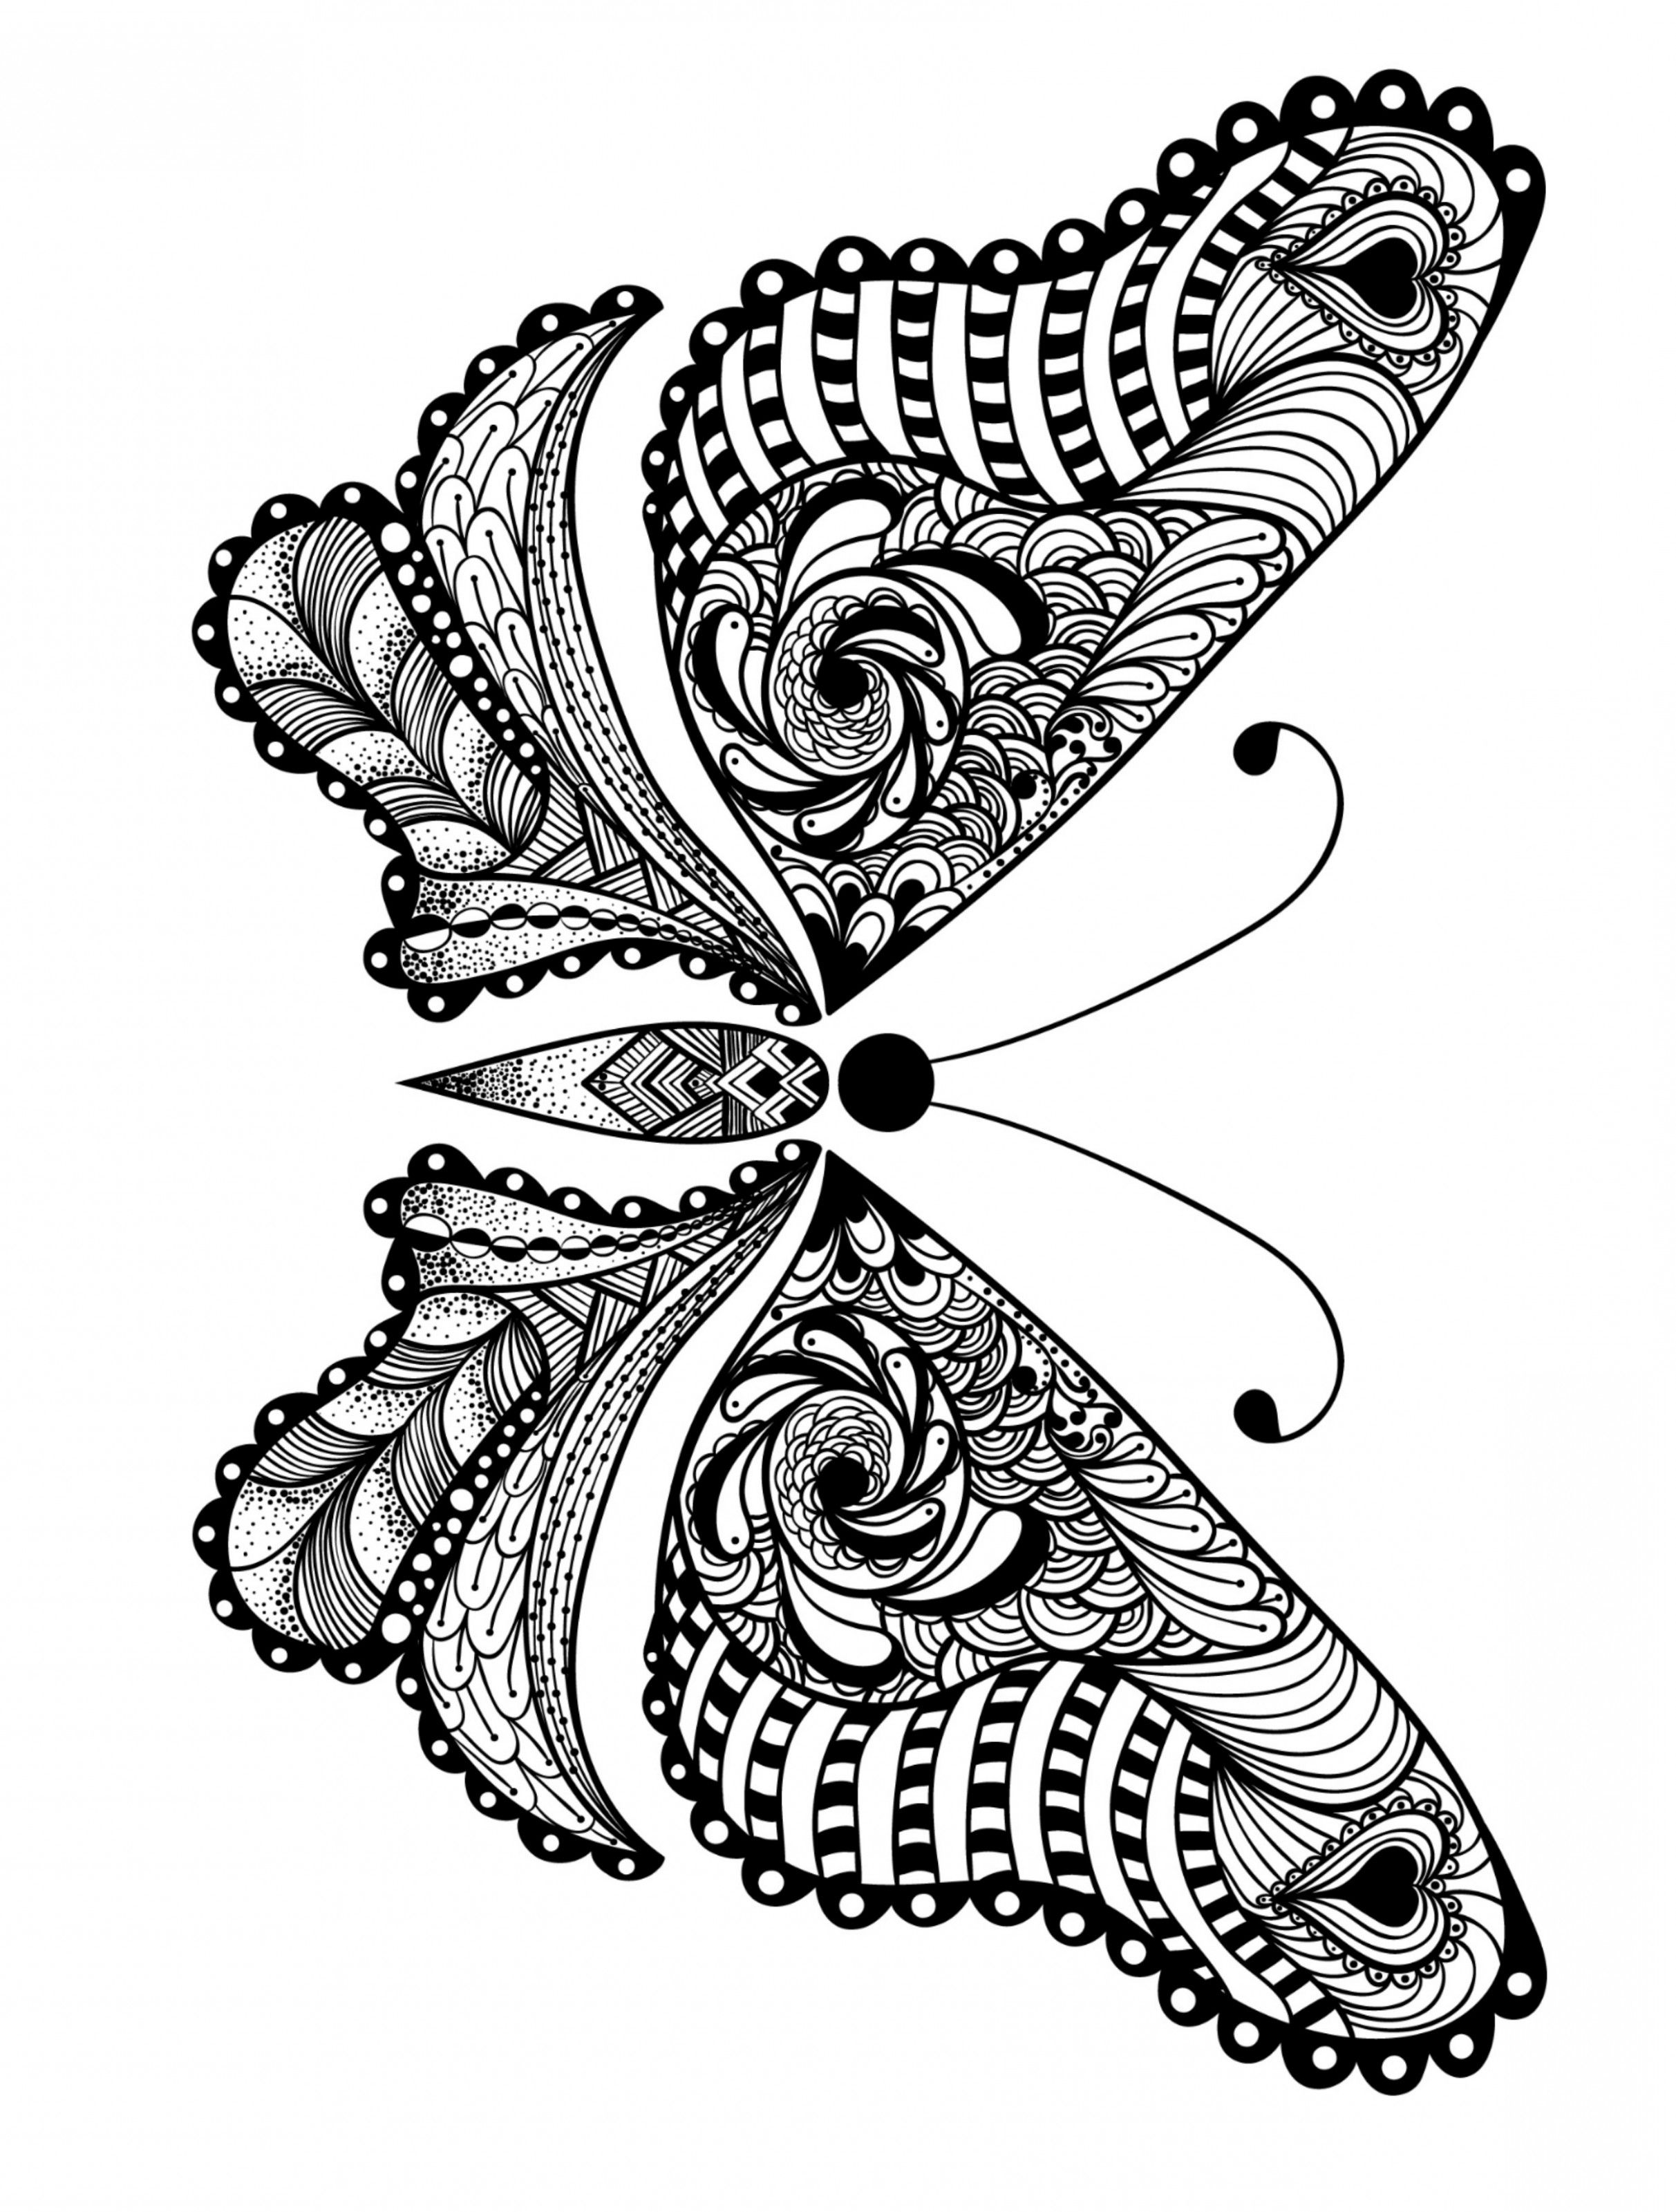 This Is How Animal Coloring Book Printable Will Look Like In 15 Years Time Coloring Animal Coloring Books Coloring Pages For Teenagers Coloring Pages